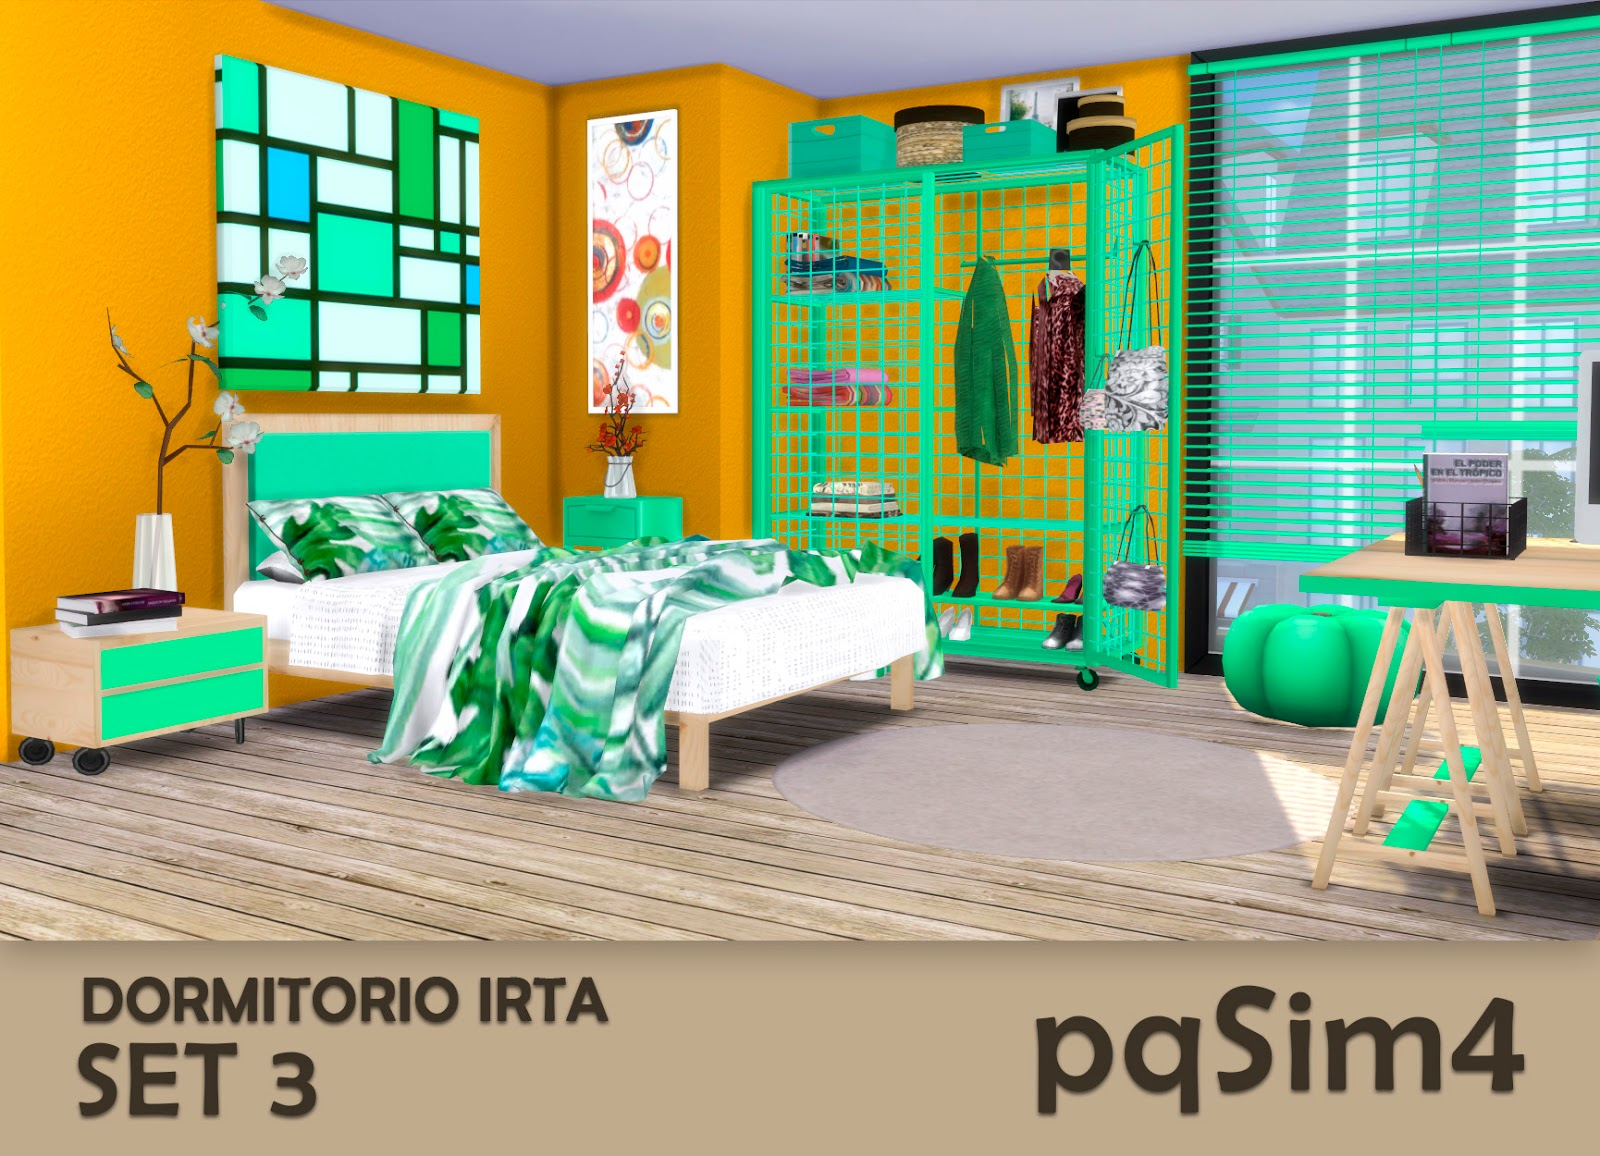 Dormitorio Irta Set 3 by pqSim4